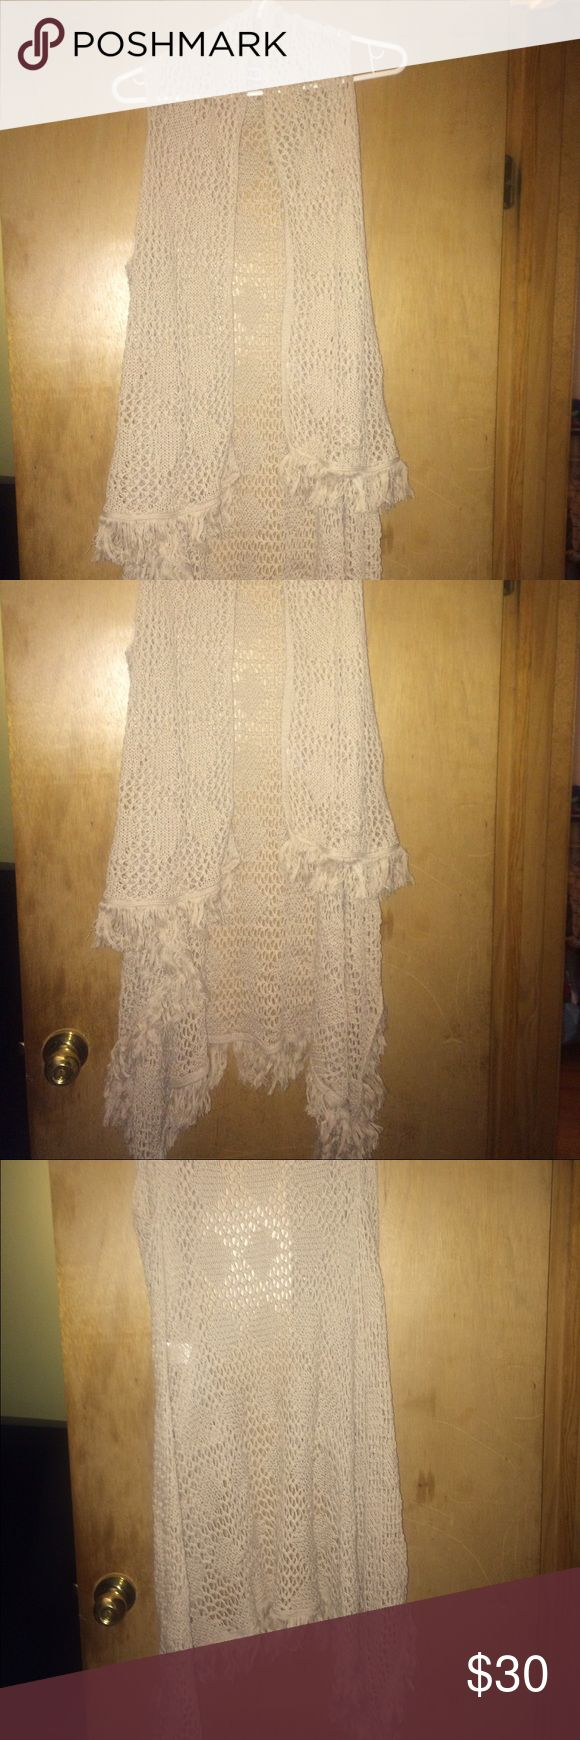 Fringe Sweater Vest. Short in front. Long in back. Beautiful never worn still has tags. From Cracker Barrel. Retailed $42. Asking 30. Firm on price size M Sweaters Shrugs & Ponchos